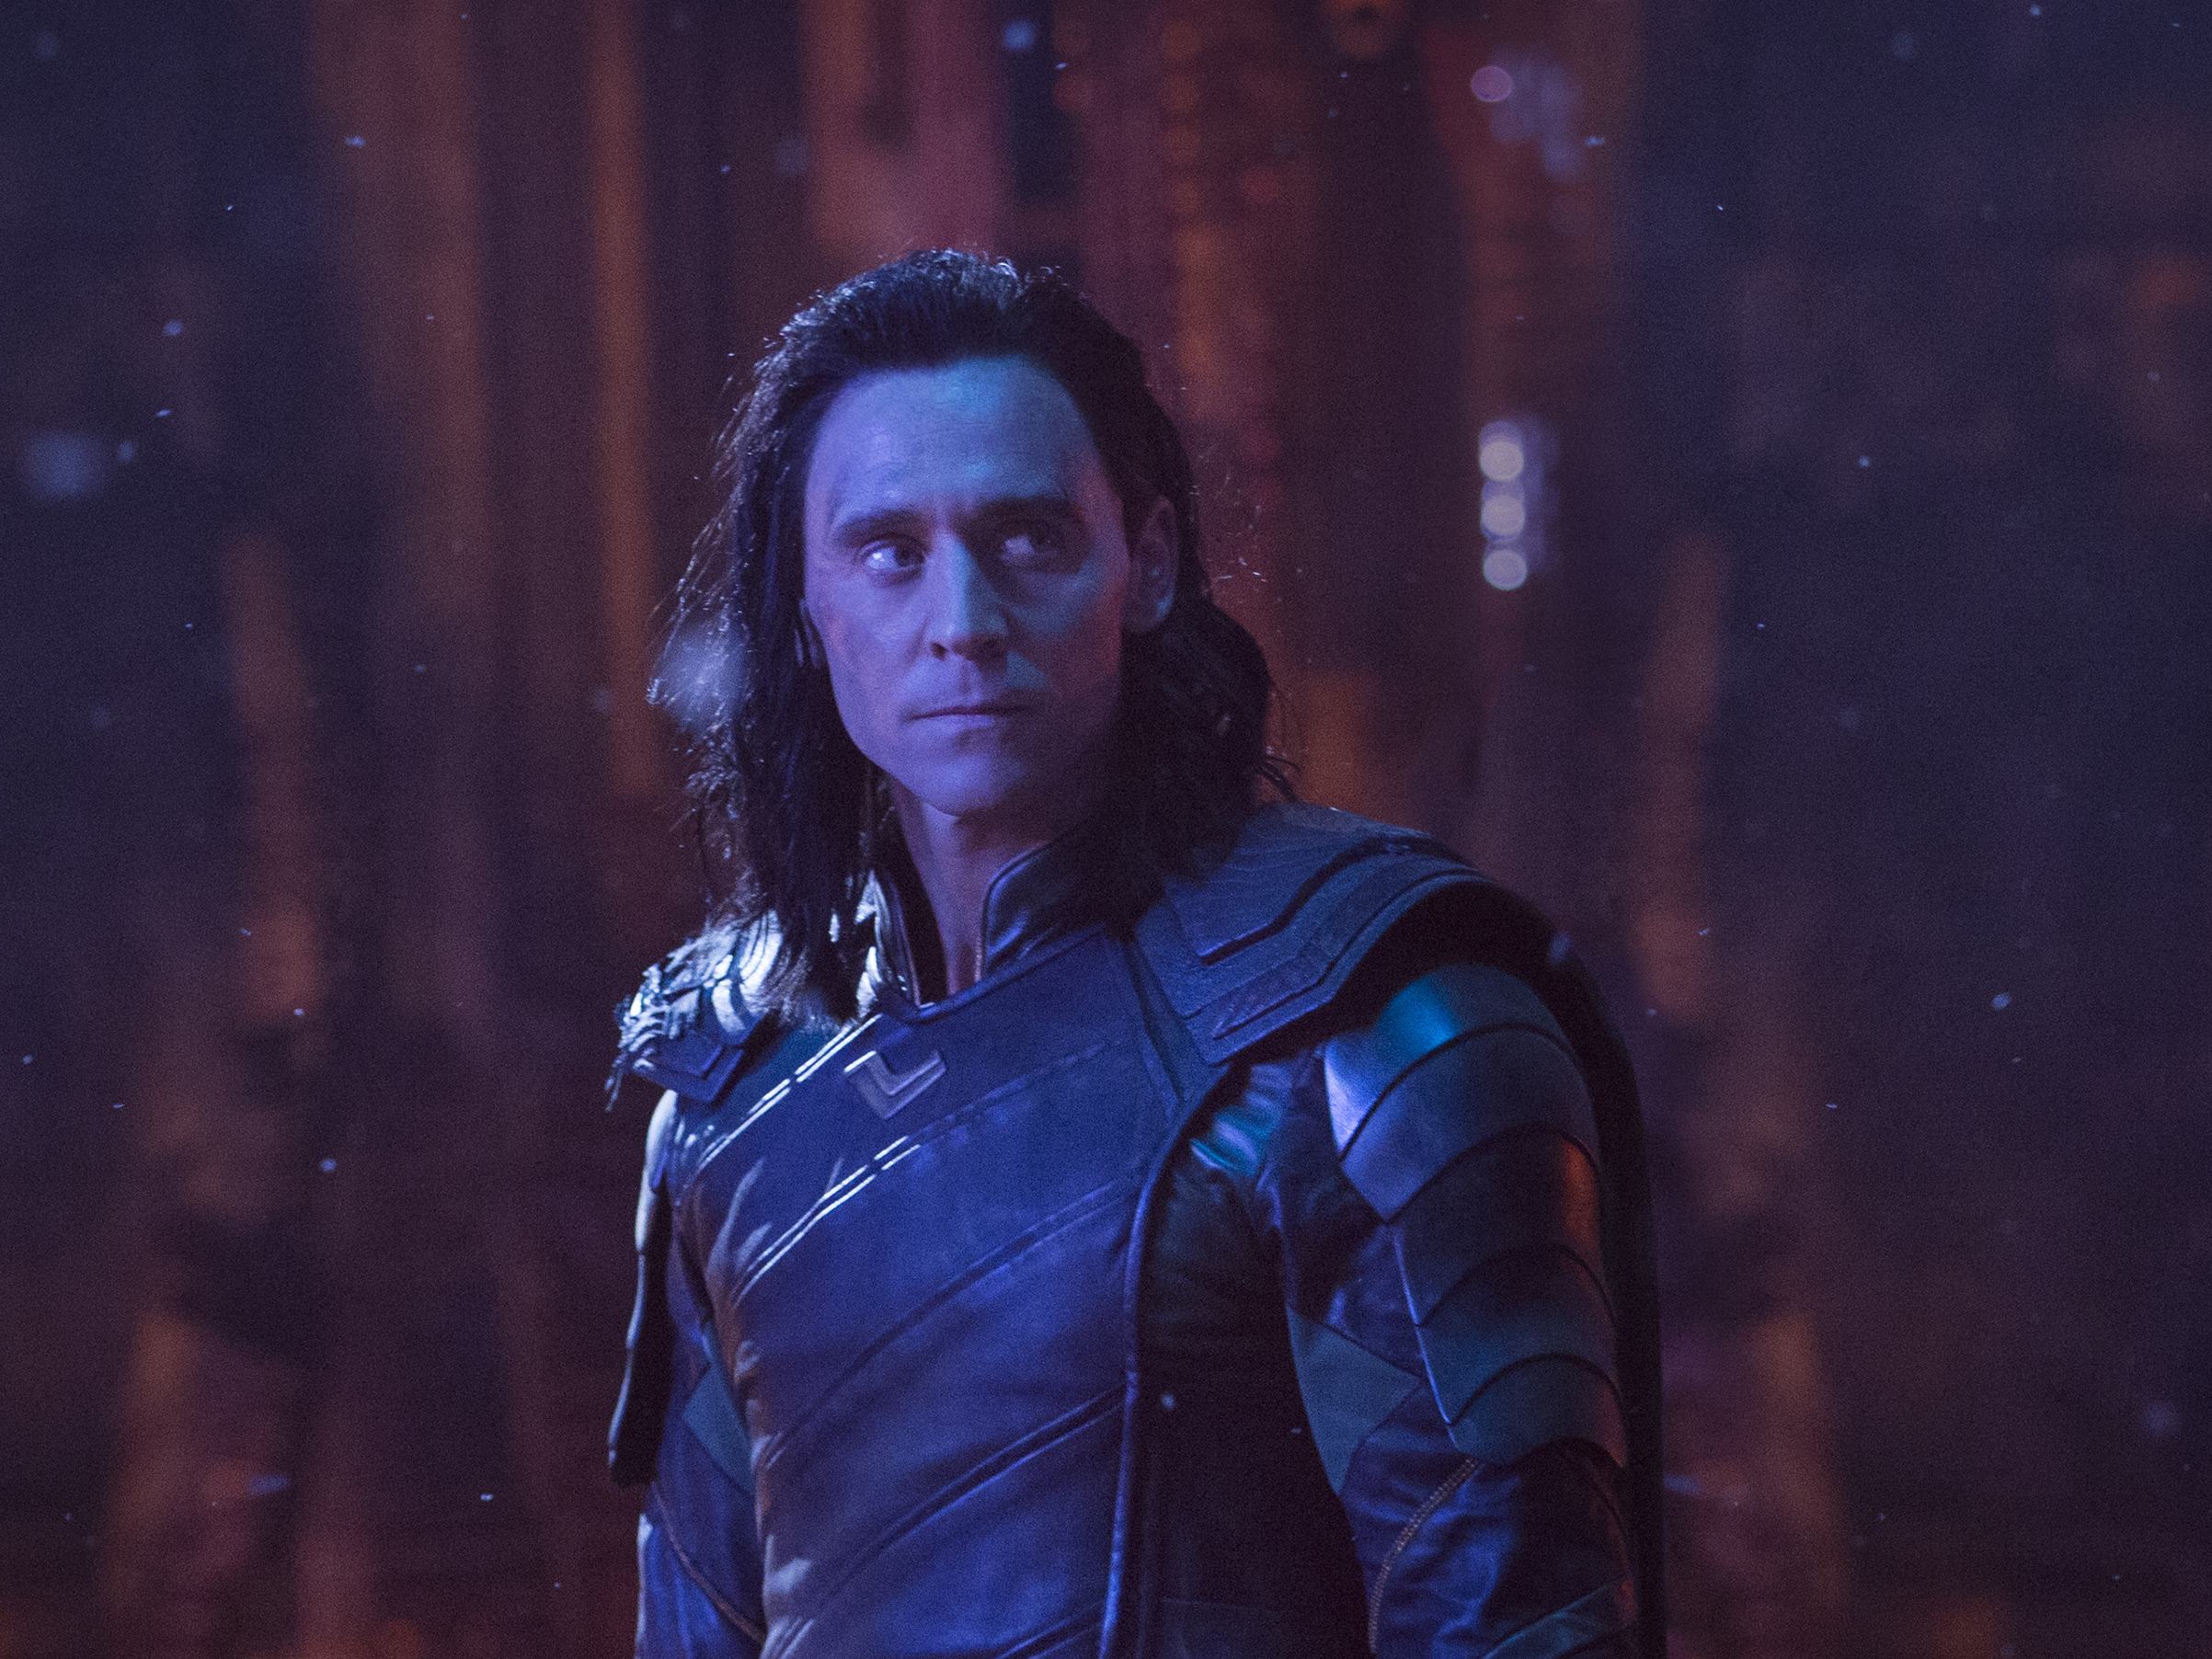 Loki (Tom Hiddleston) in Marvel Studios' AVENGERS: INFINITY WAR